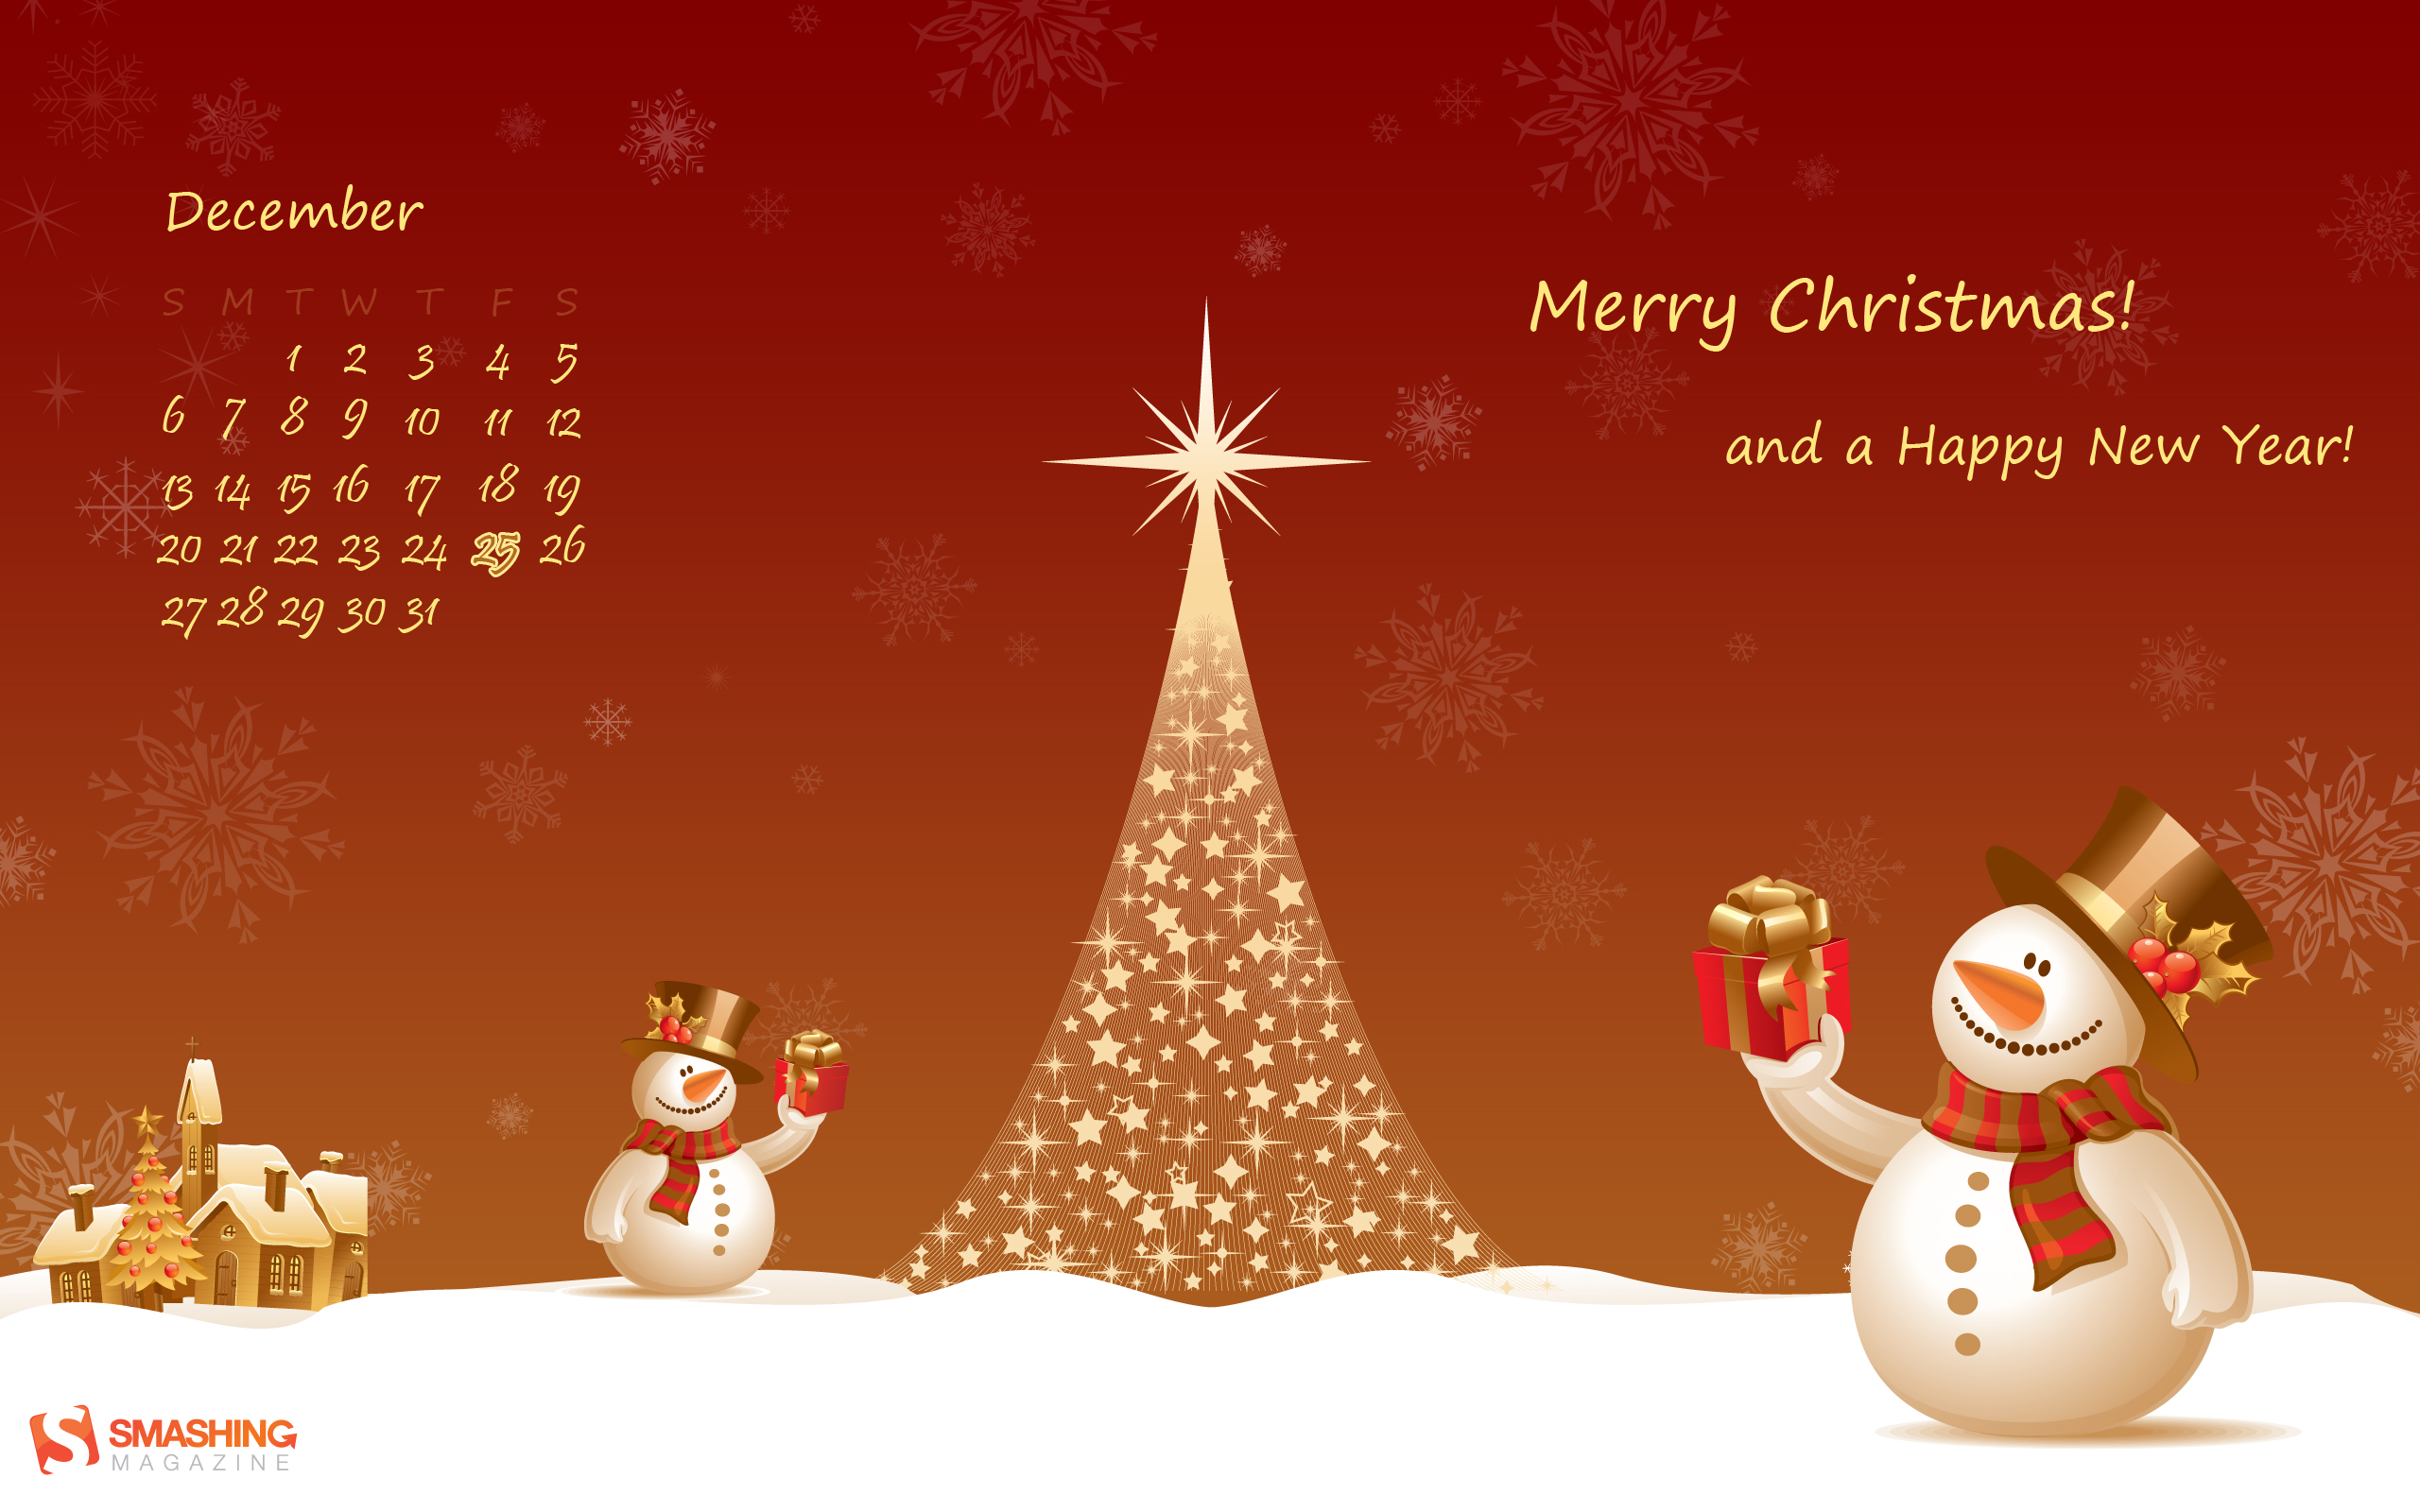 2560x1600 Christmas Snowman Desktop PC And Mac Wallpaper